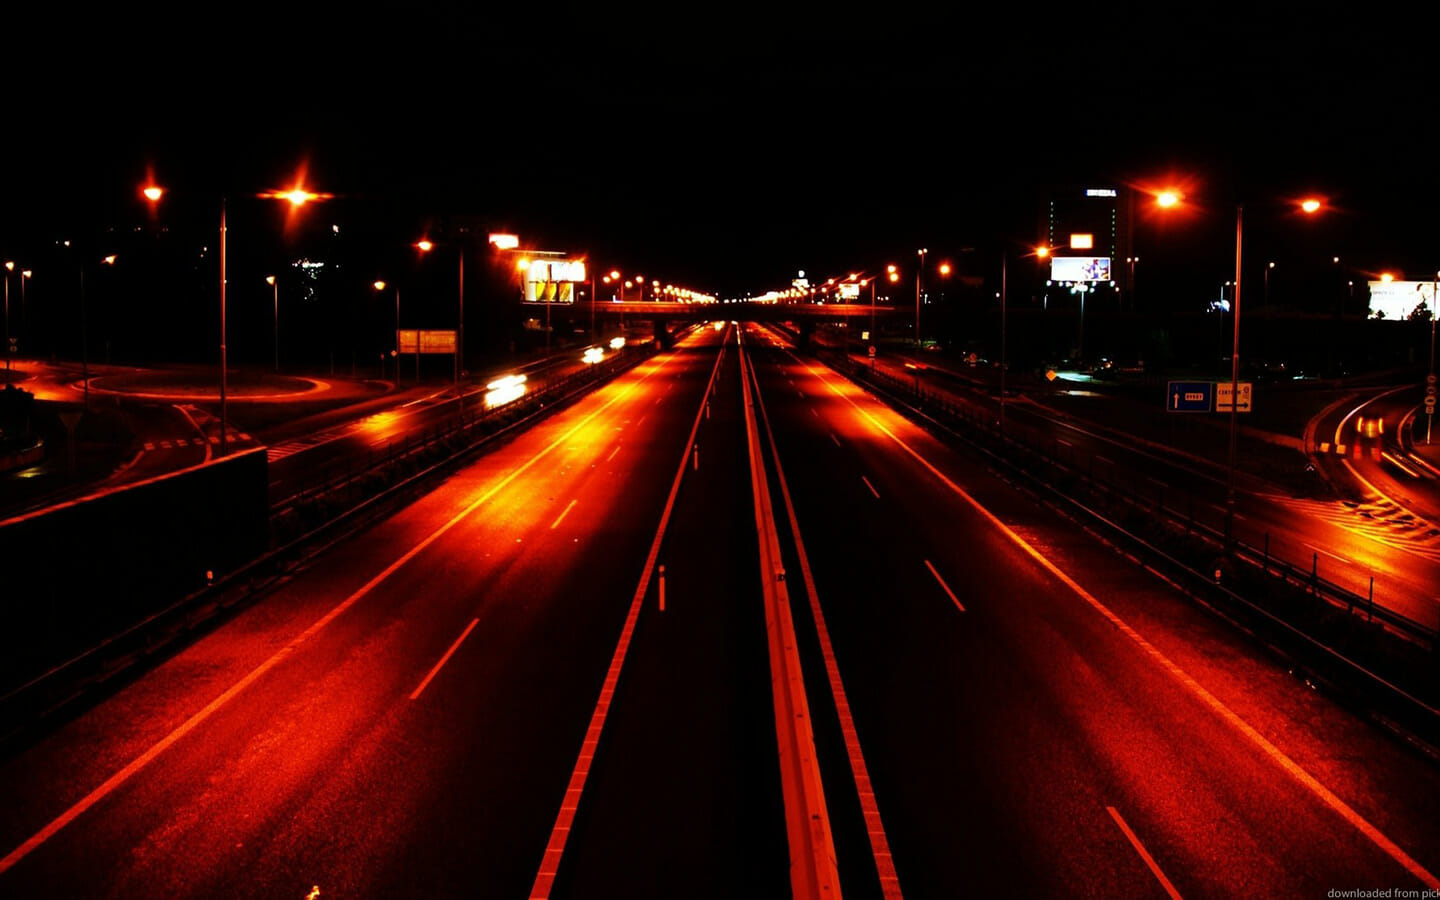 Night view of a road